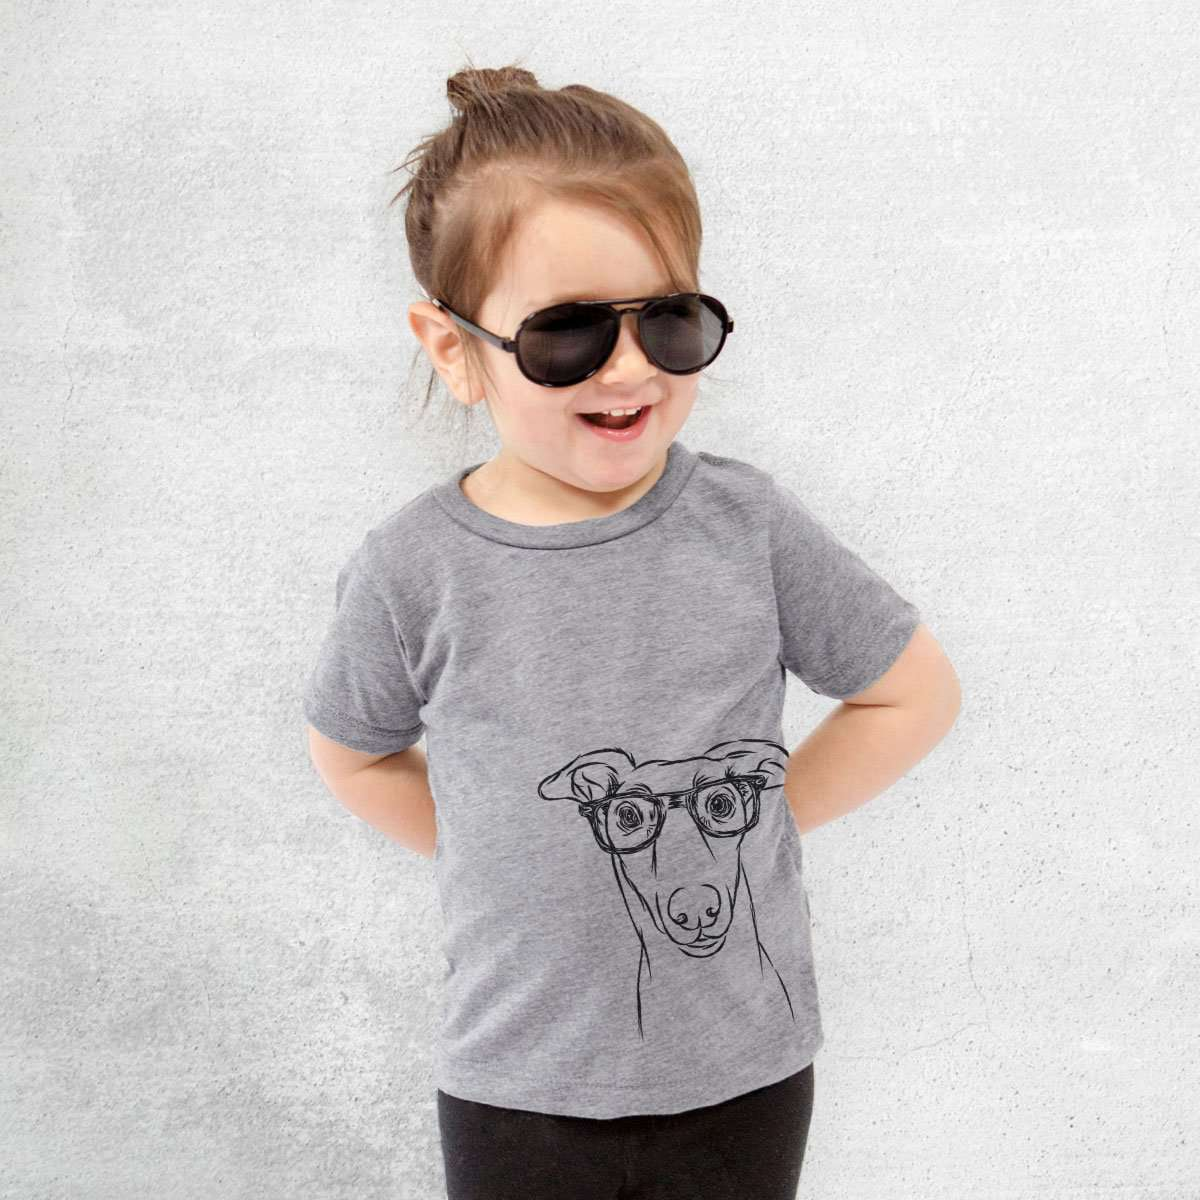 Diva the Greyhound  - Kids/Youth/Toddler Shirt